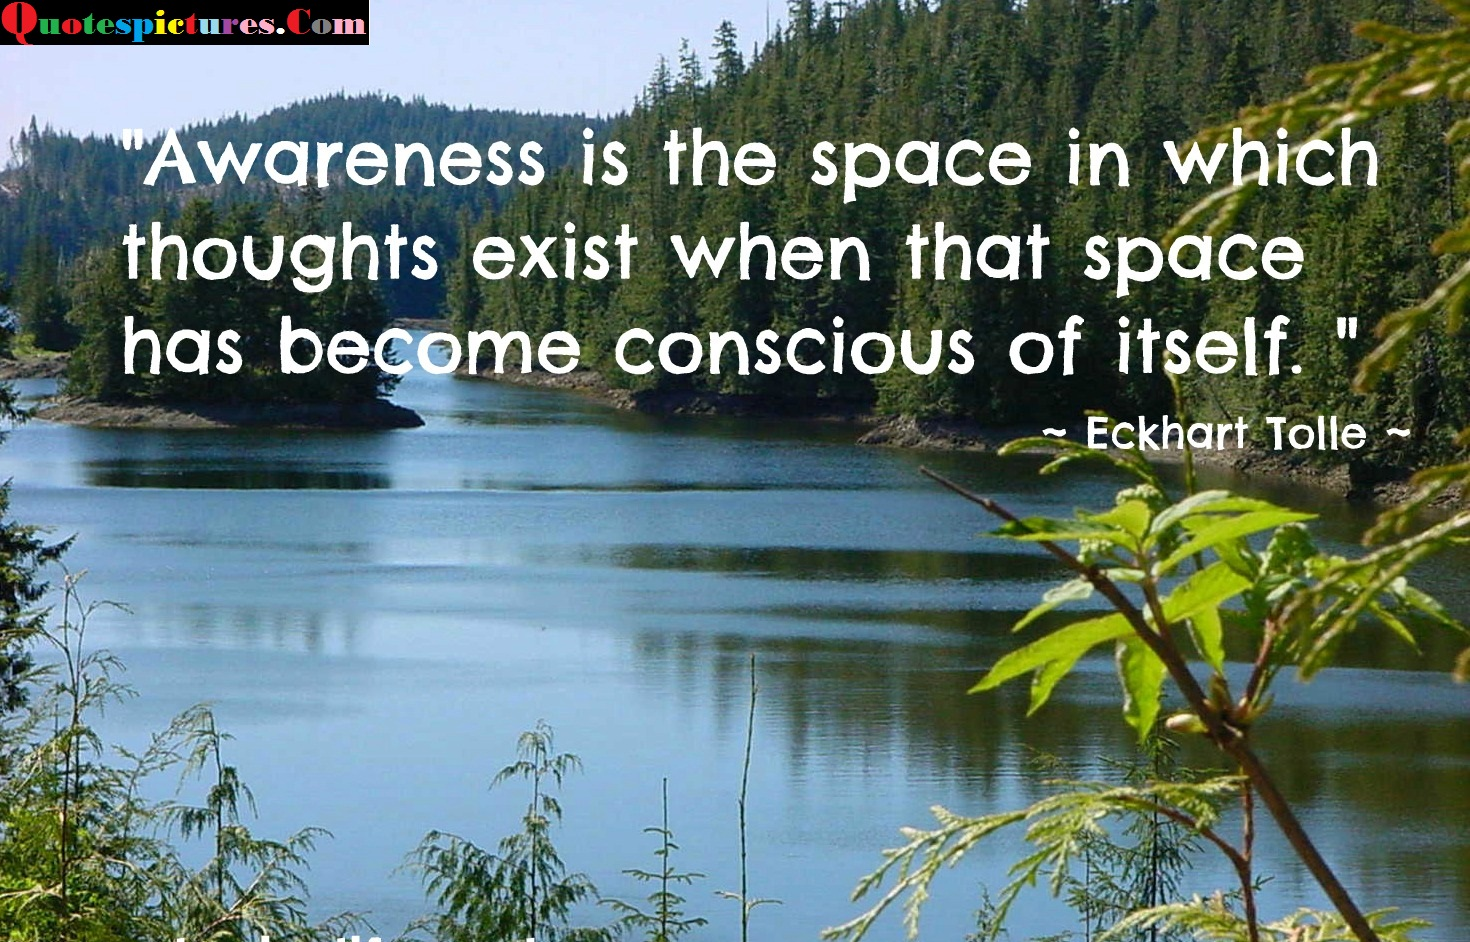 Awareness Quotes - Awareness Is The Space In Which Thoughts Exist By Eckhart Tolle